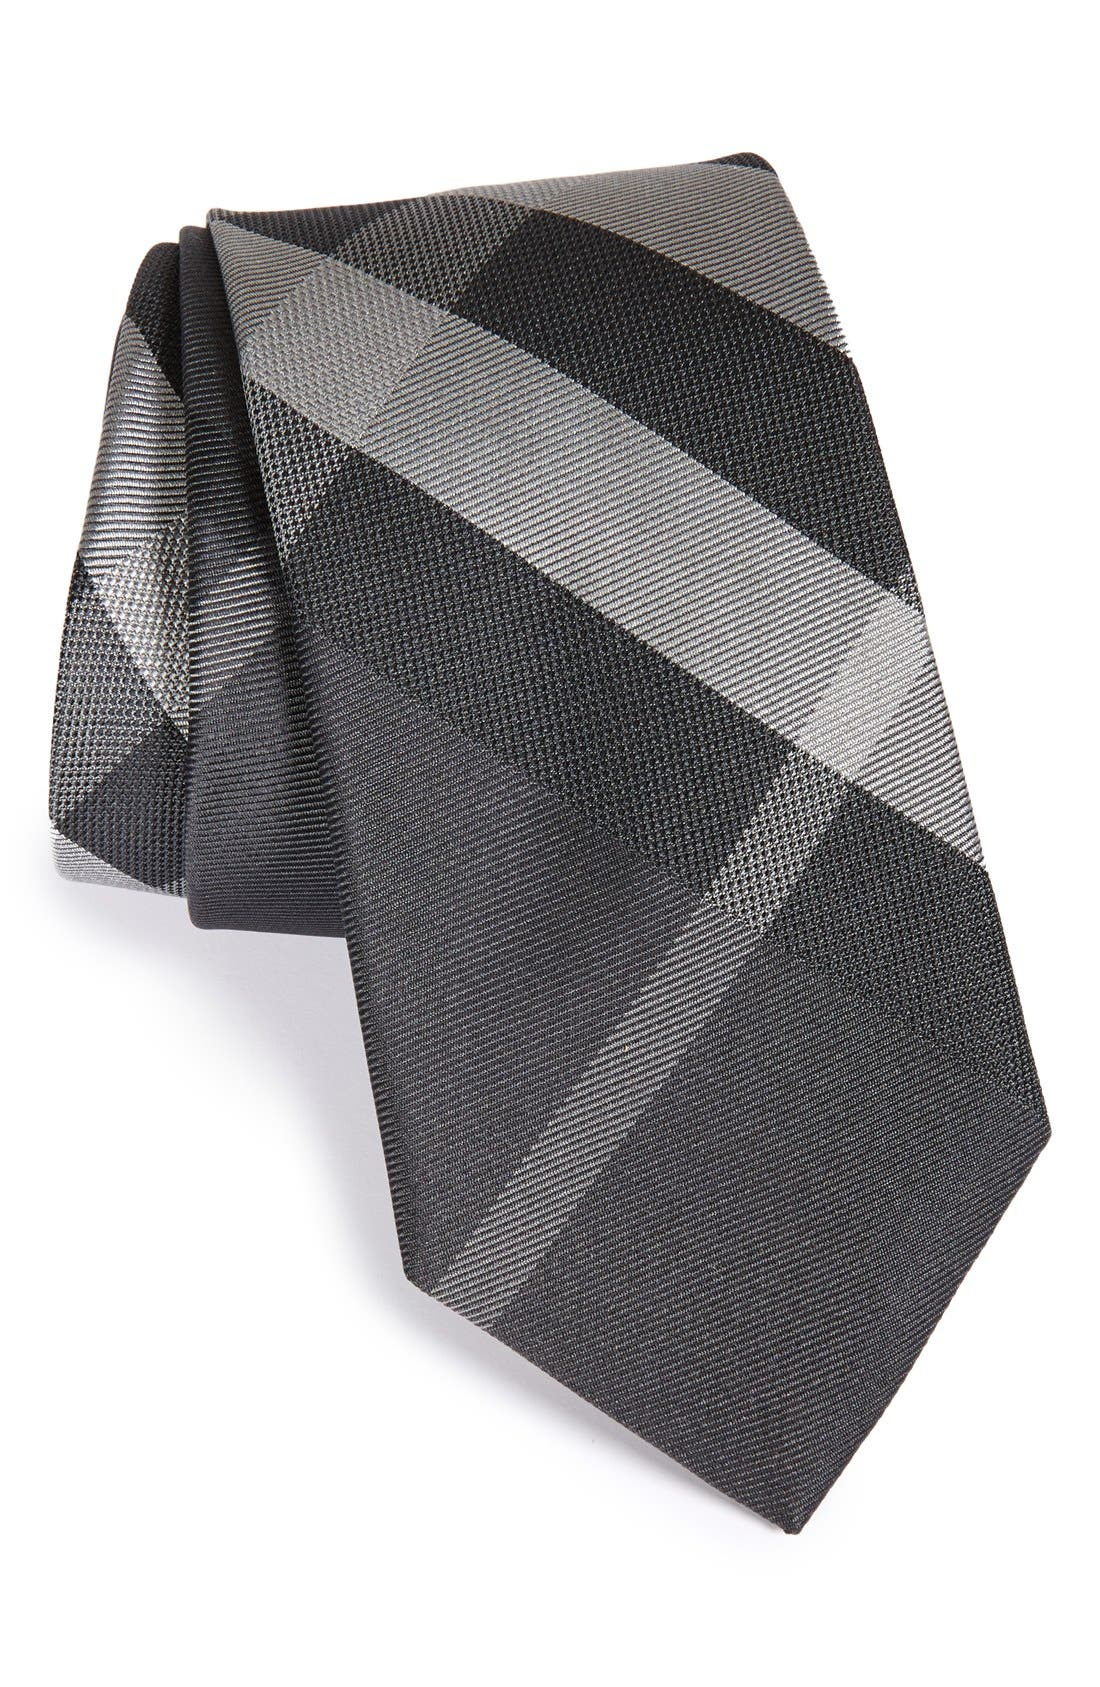 Alternate Image 1 Selected - Burberry Manston Check Silk Tie